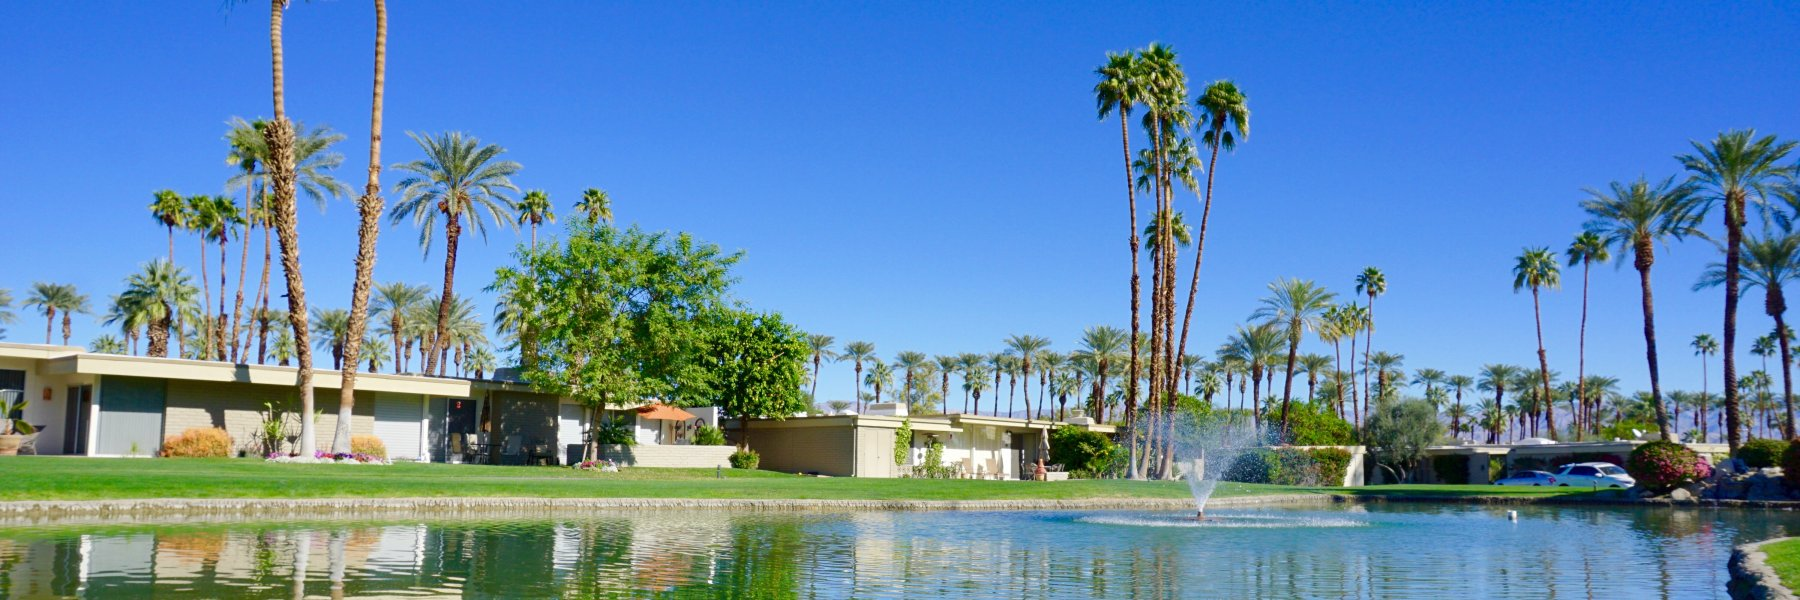 Casa Dorado is a community of homes in Indian Wells, California